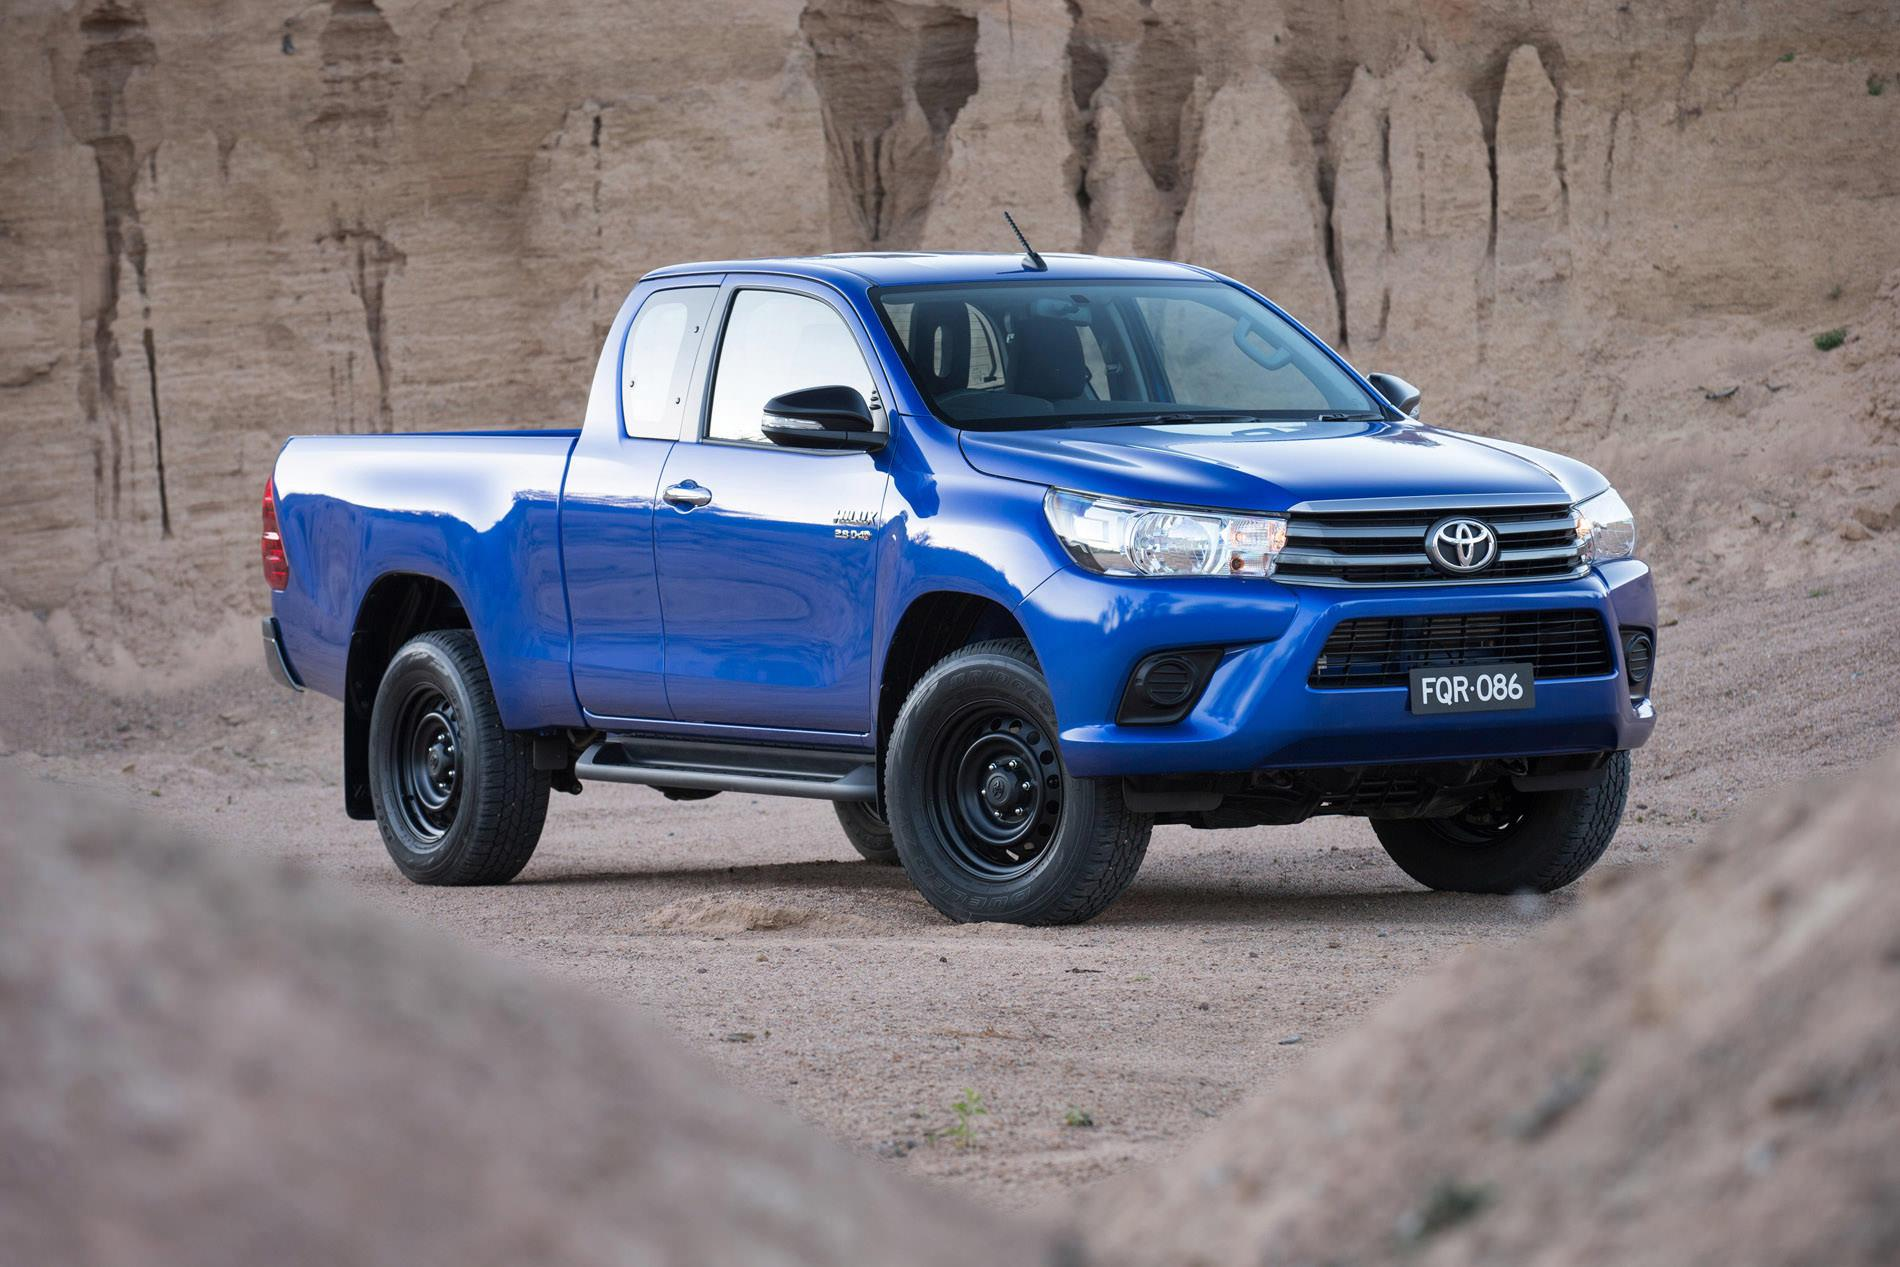 Toyota Hilux SW4 2017 Wallpaper #14187 - 2017 Cars Wallpaper